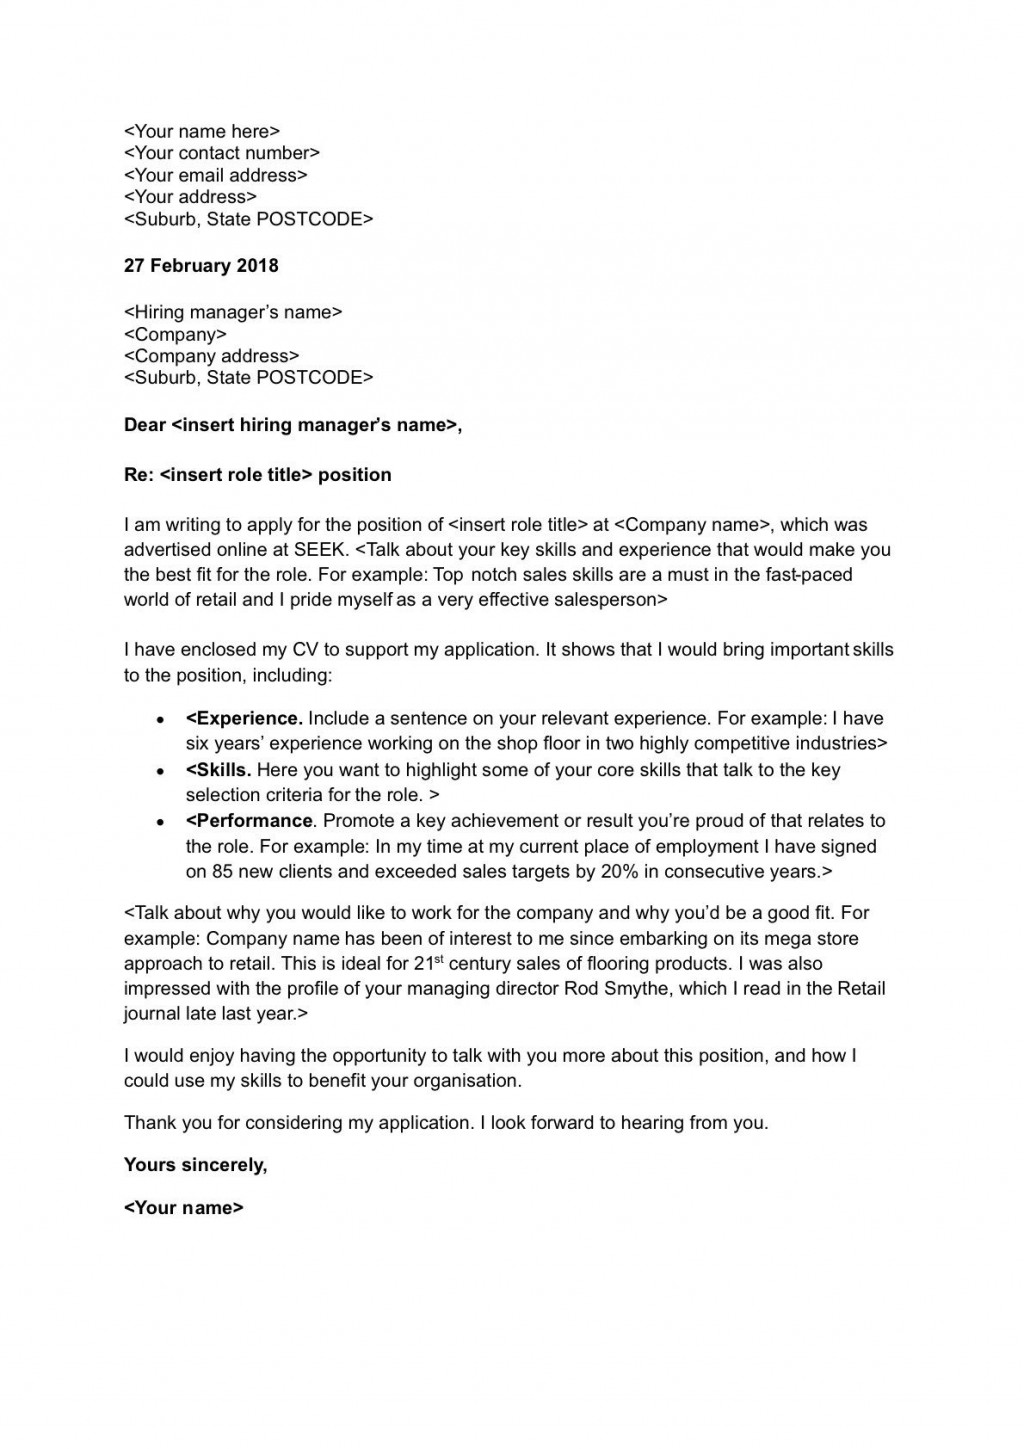 008 Simple It Cover Letter Template Image  Manager Job Uk ApplicationLarge